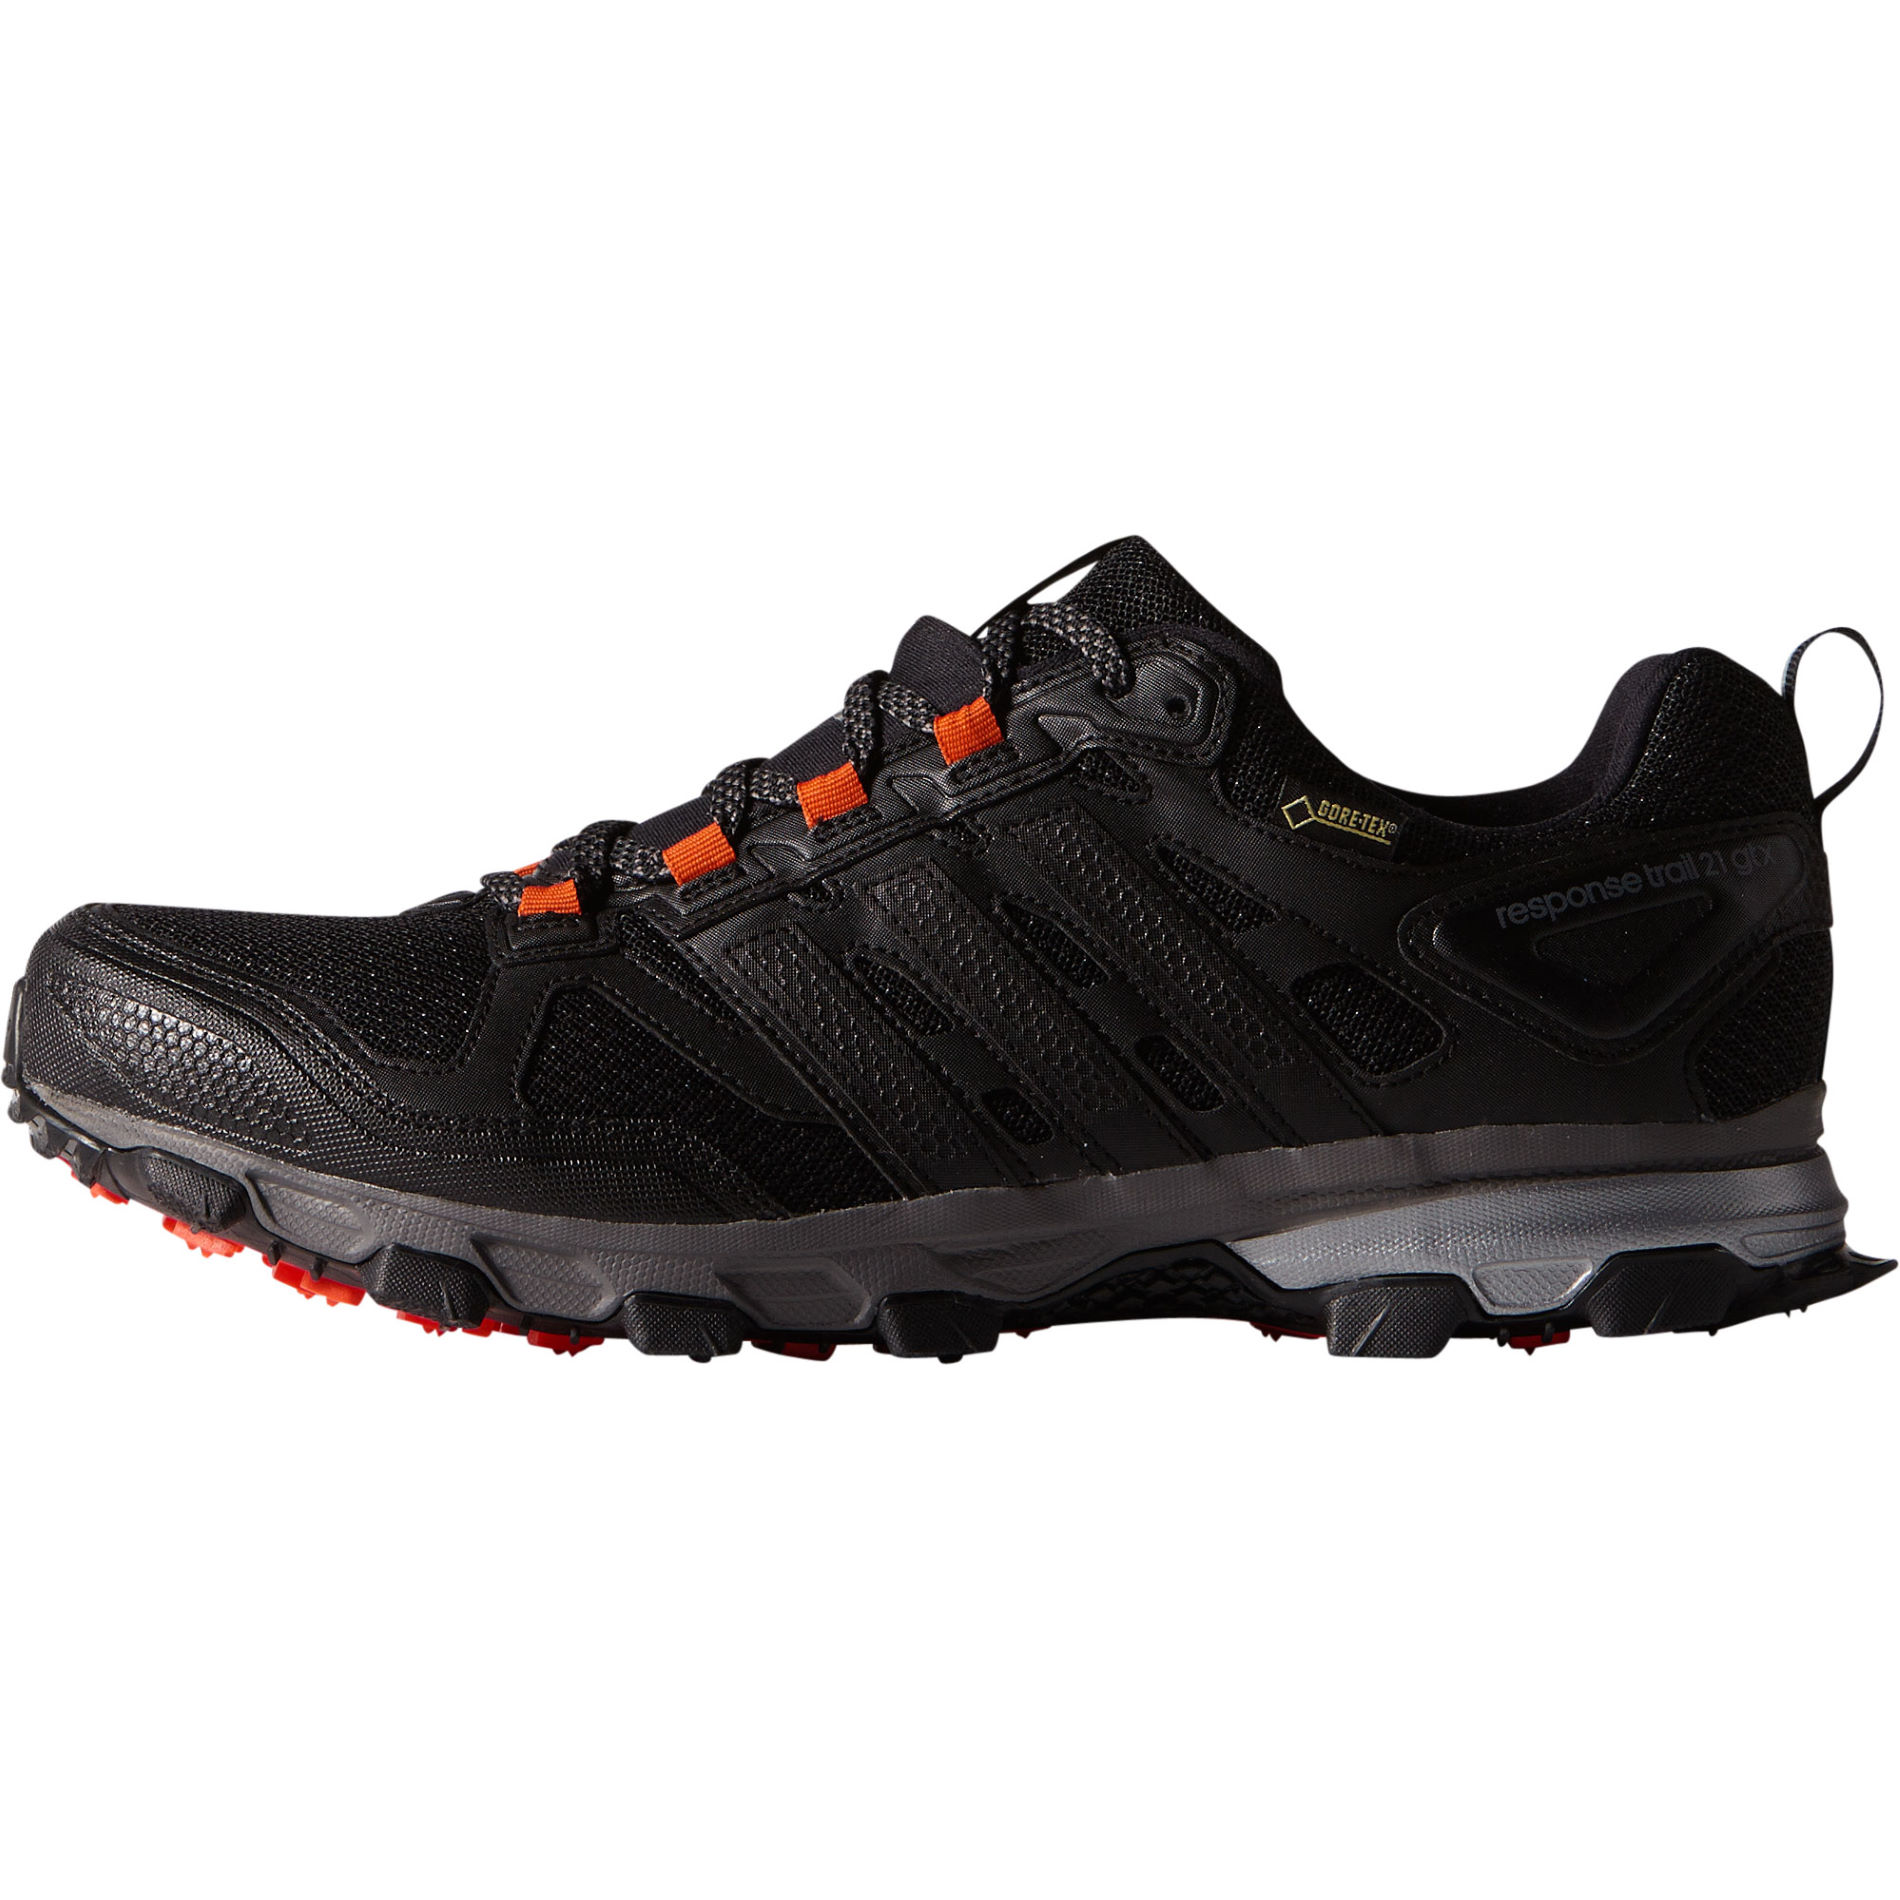 wiggle adidas response trail 21 gtx shoes aw14. Black Bedroom Furniture Sets. Home Design Ideas